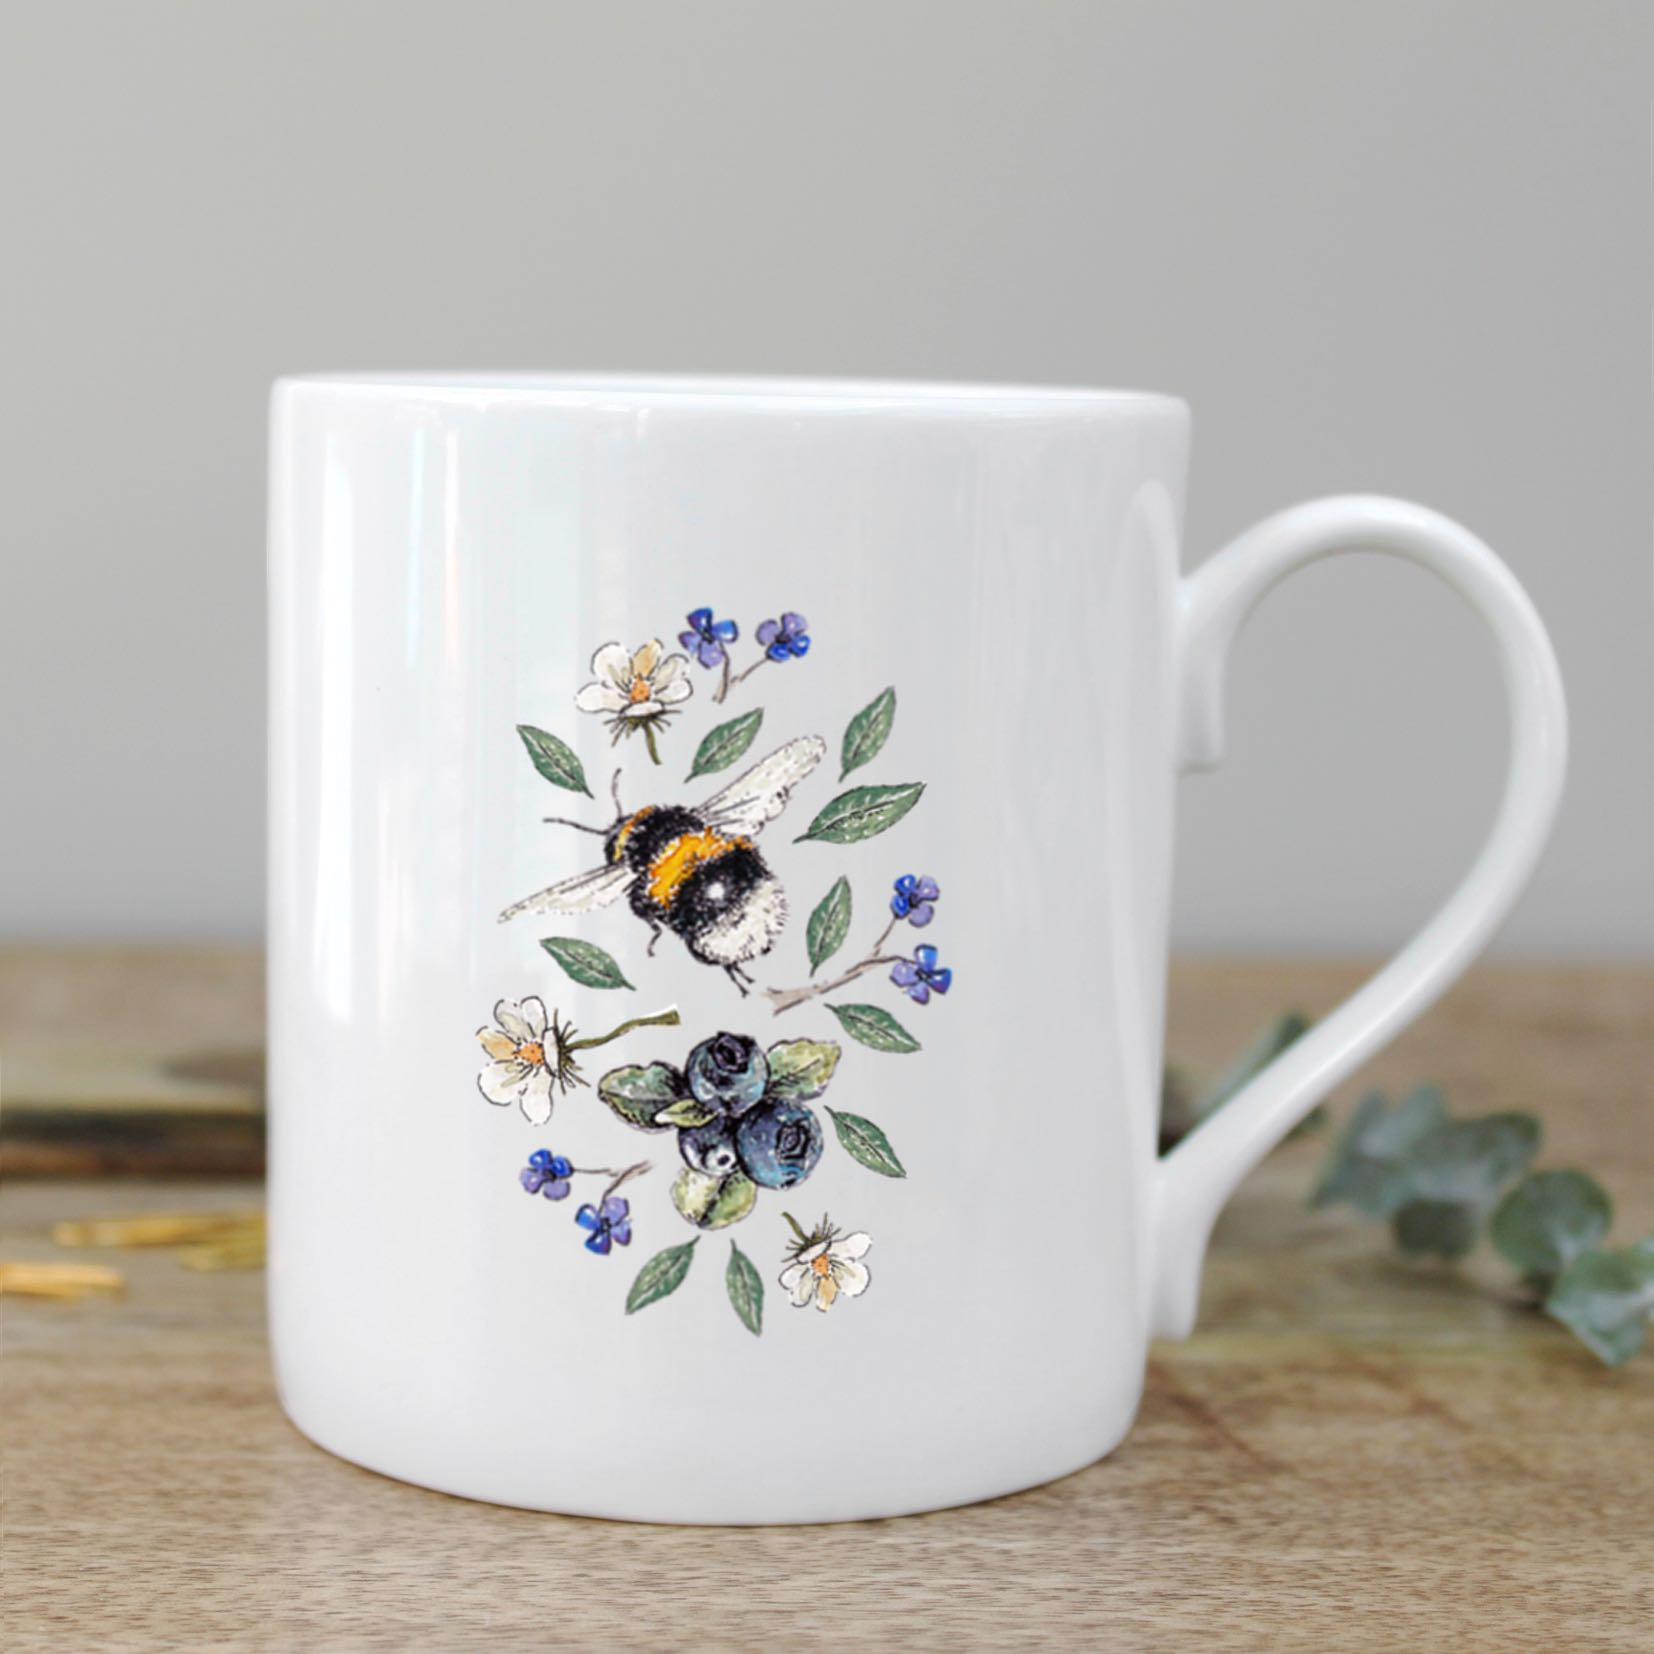 Wild Flower Meadows Bee Mug in a Gift Box